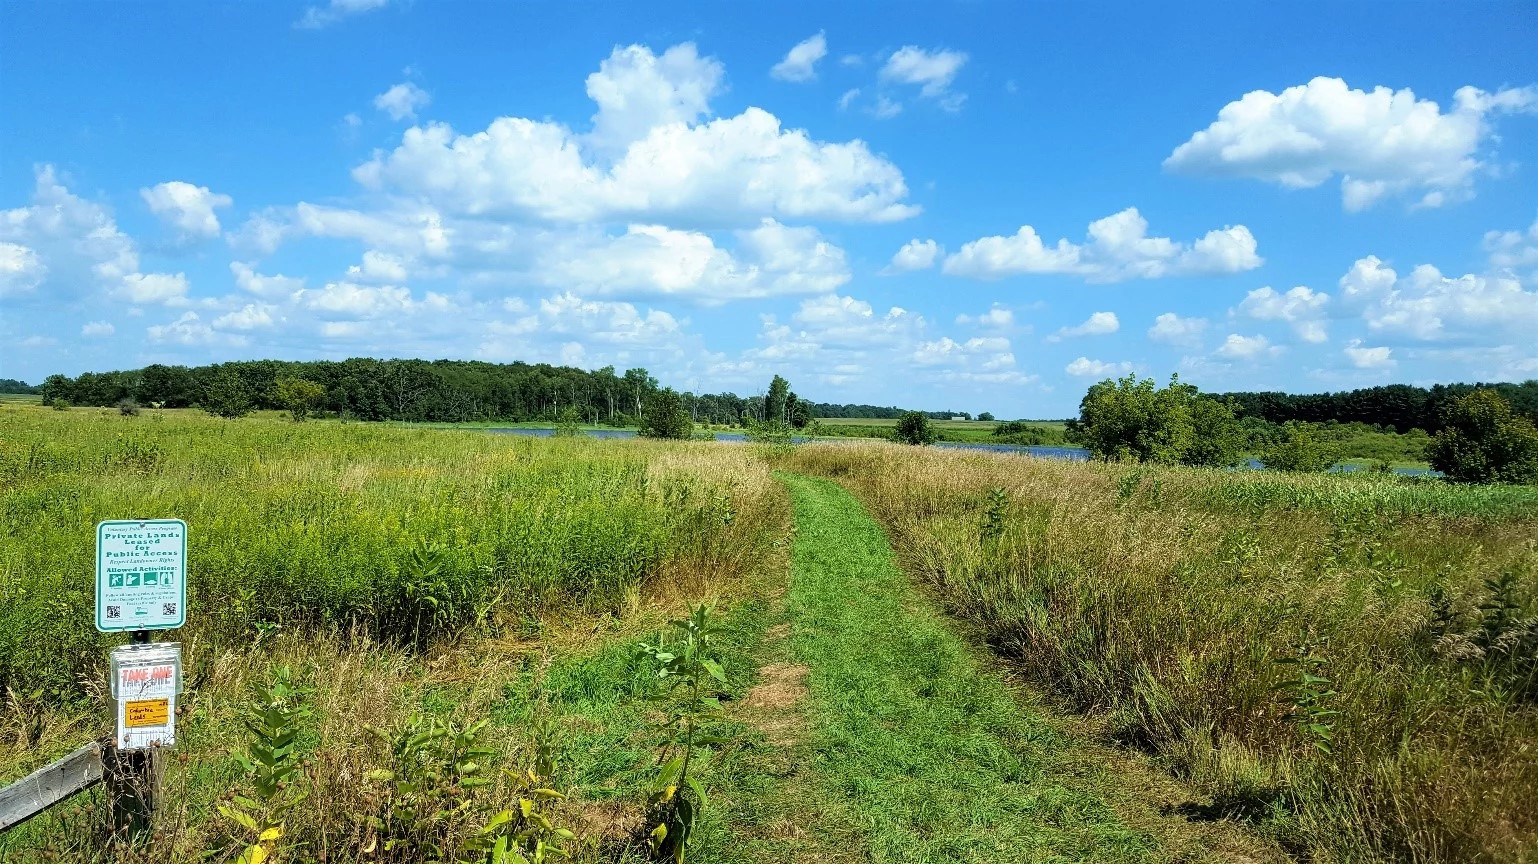 A view of public access land with a path through grass, leading to water.